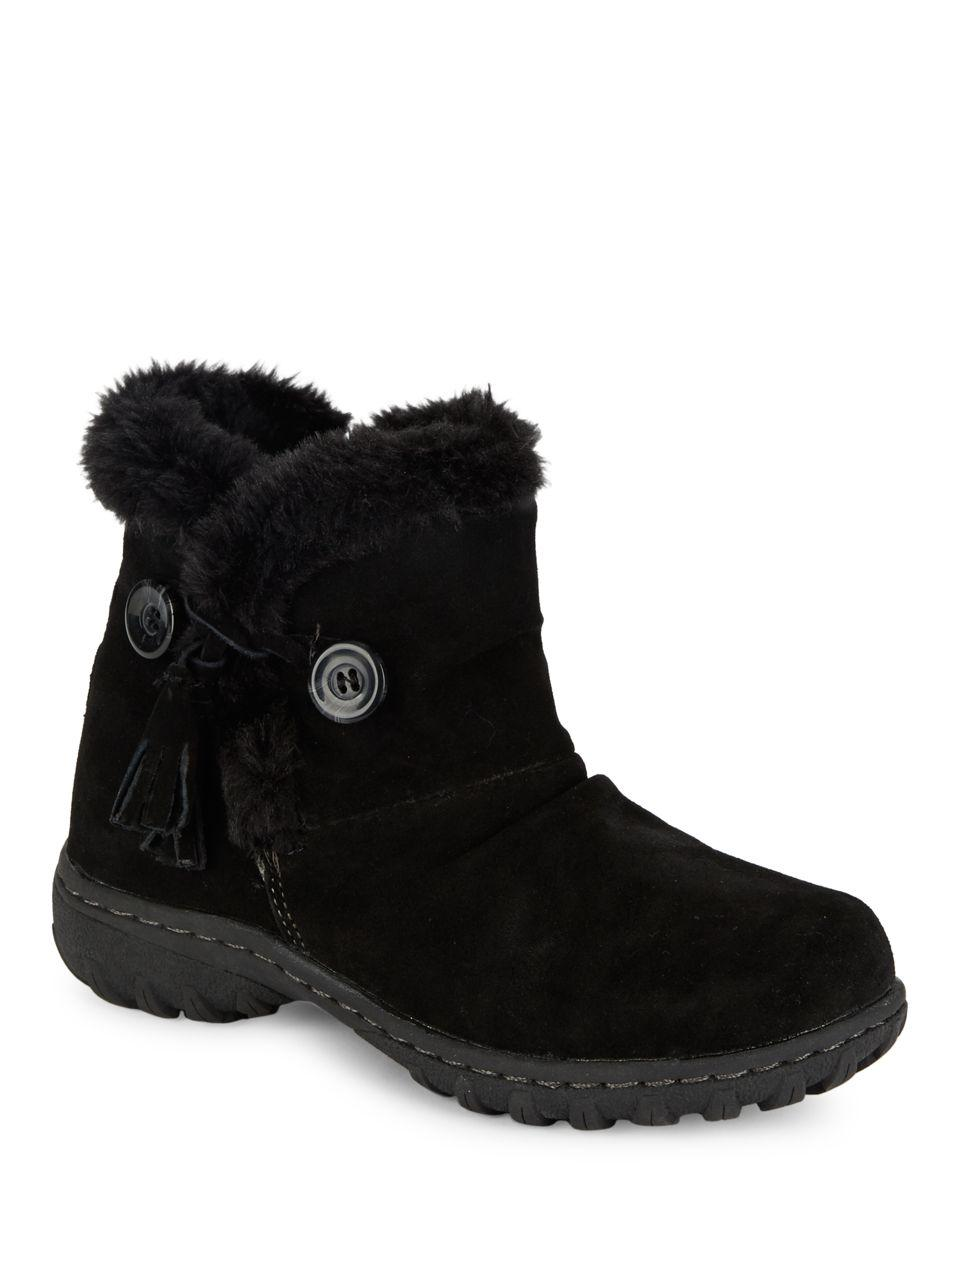 Lyst Khombu Copper Sherpa Lined Suede Ankle Boots In Black